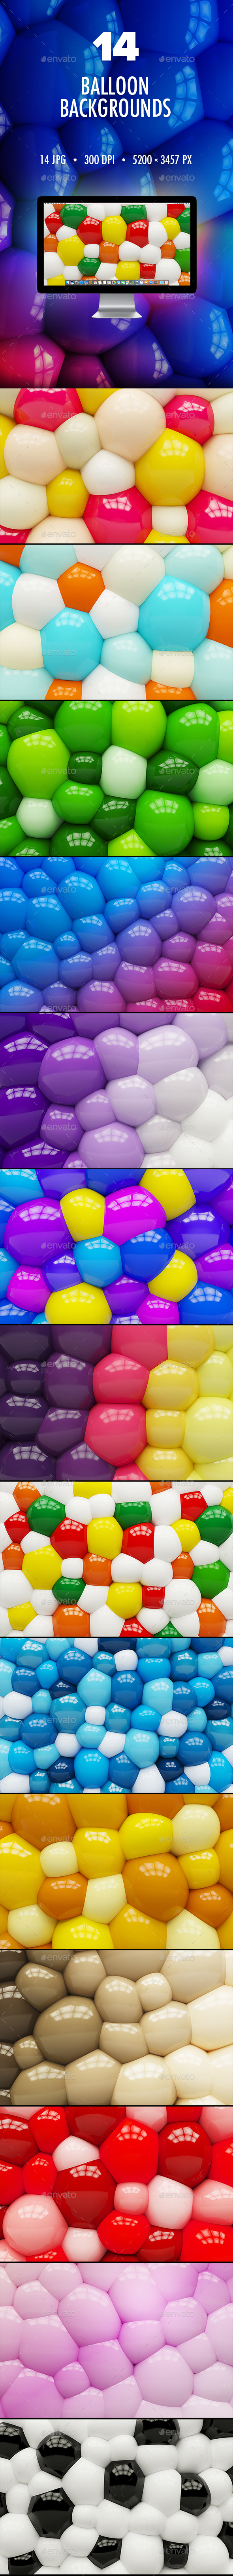 14 Balloon Backgrounds - 3D Backgrounds